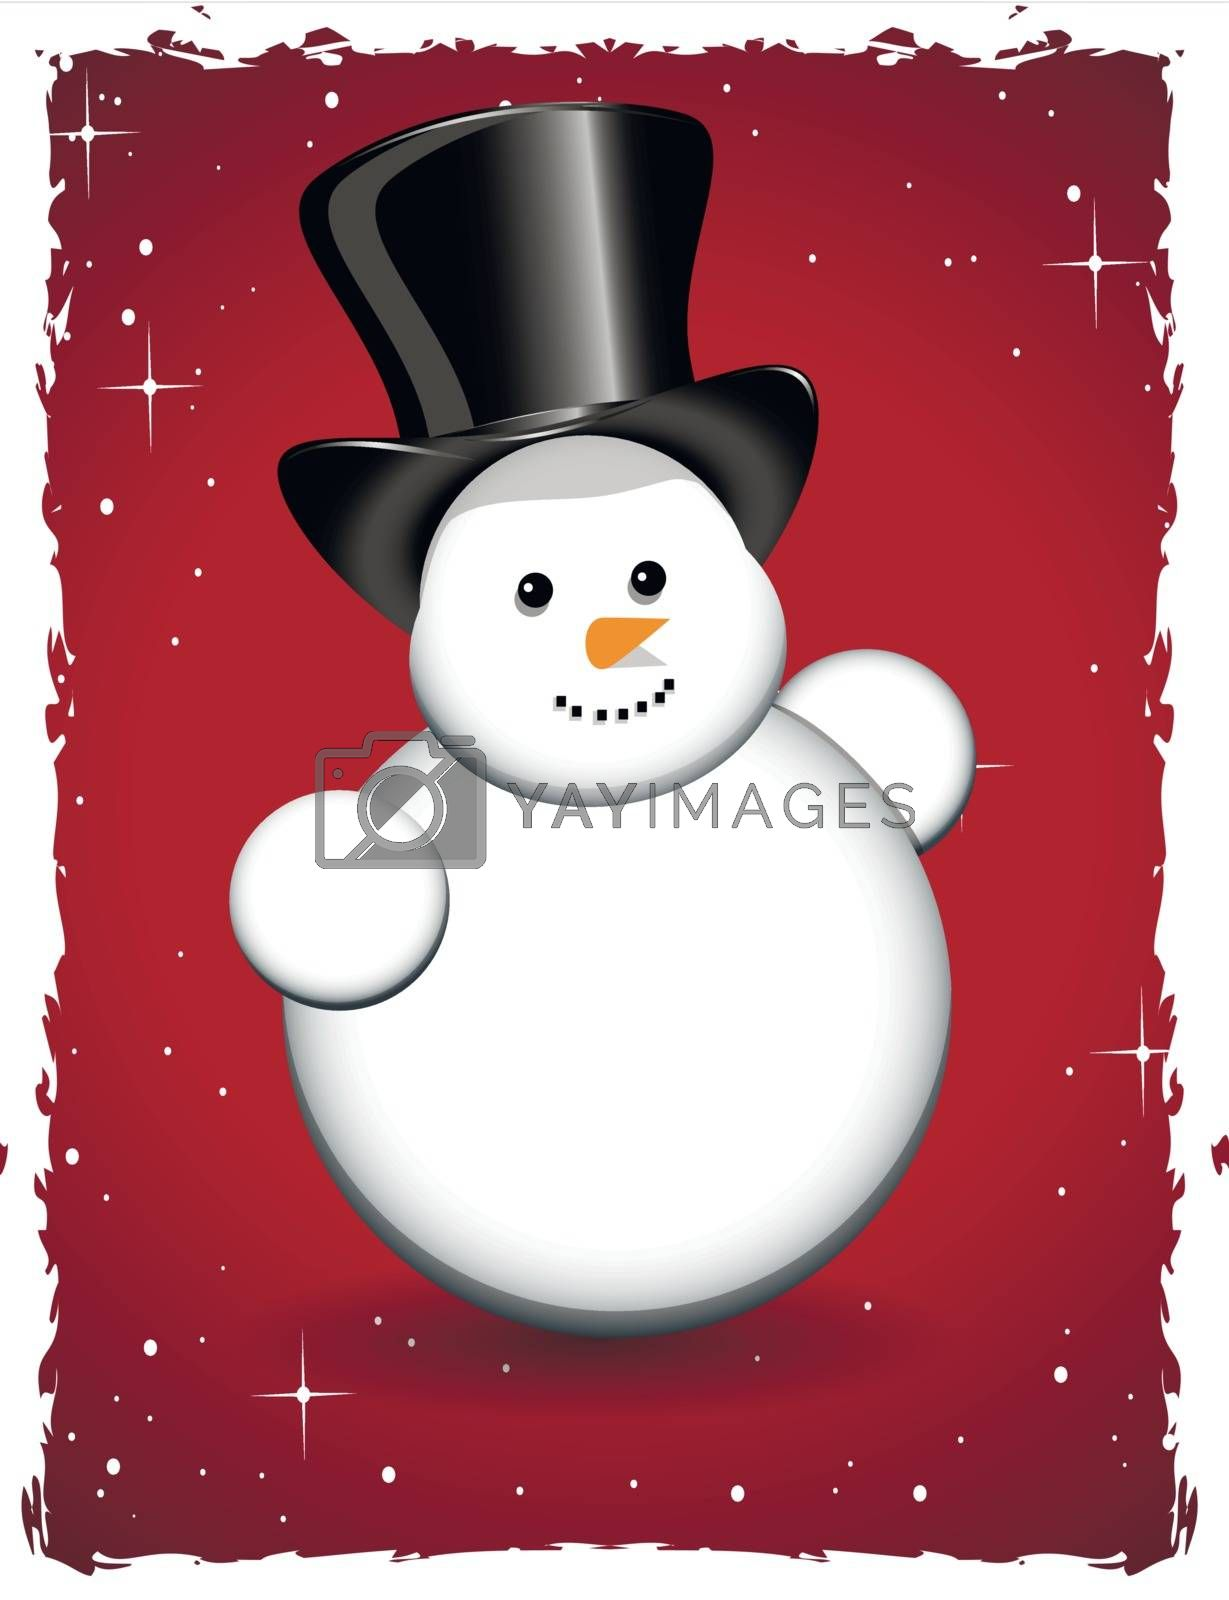 illustration snowman with star on red background